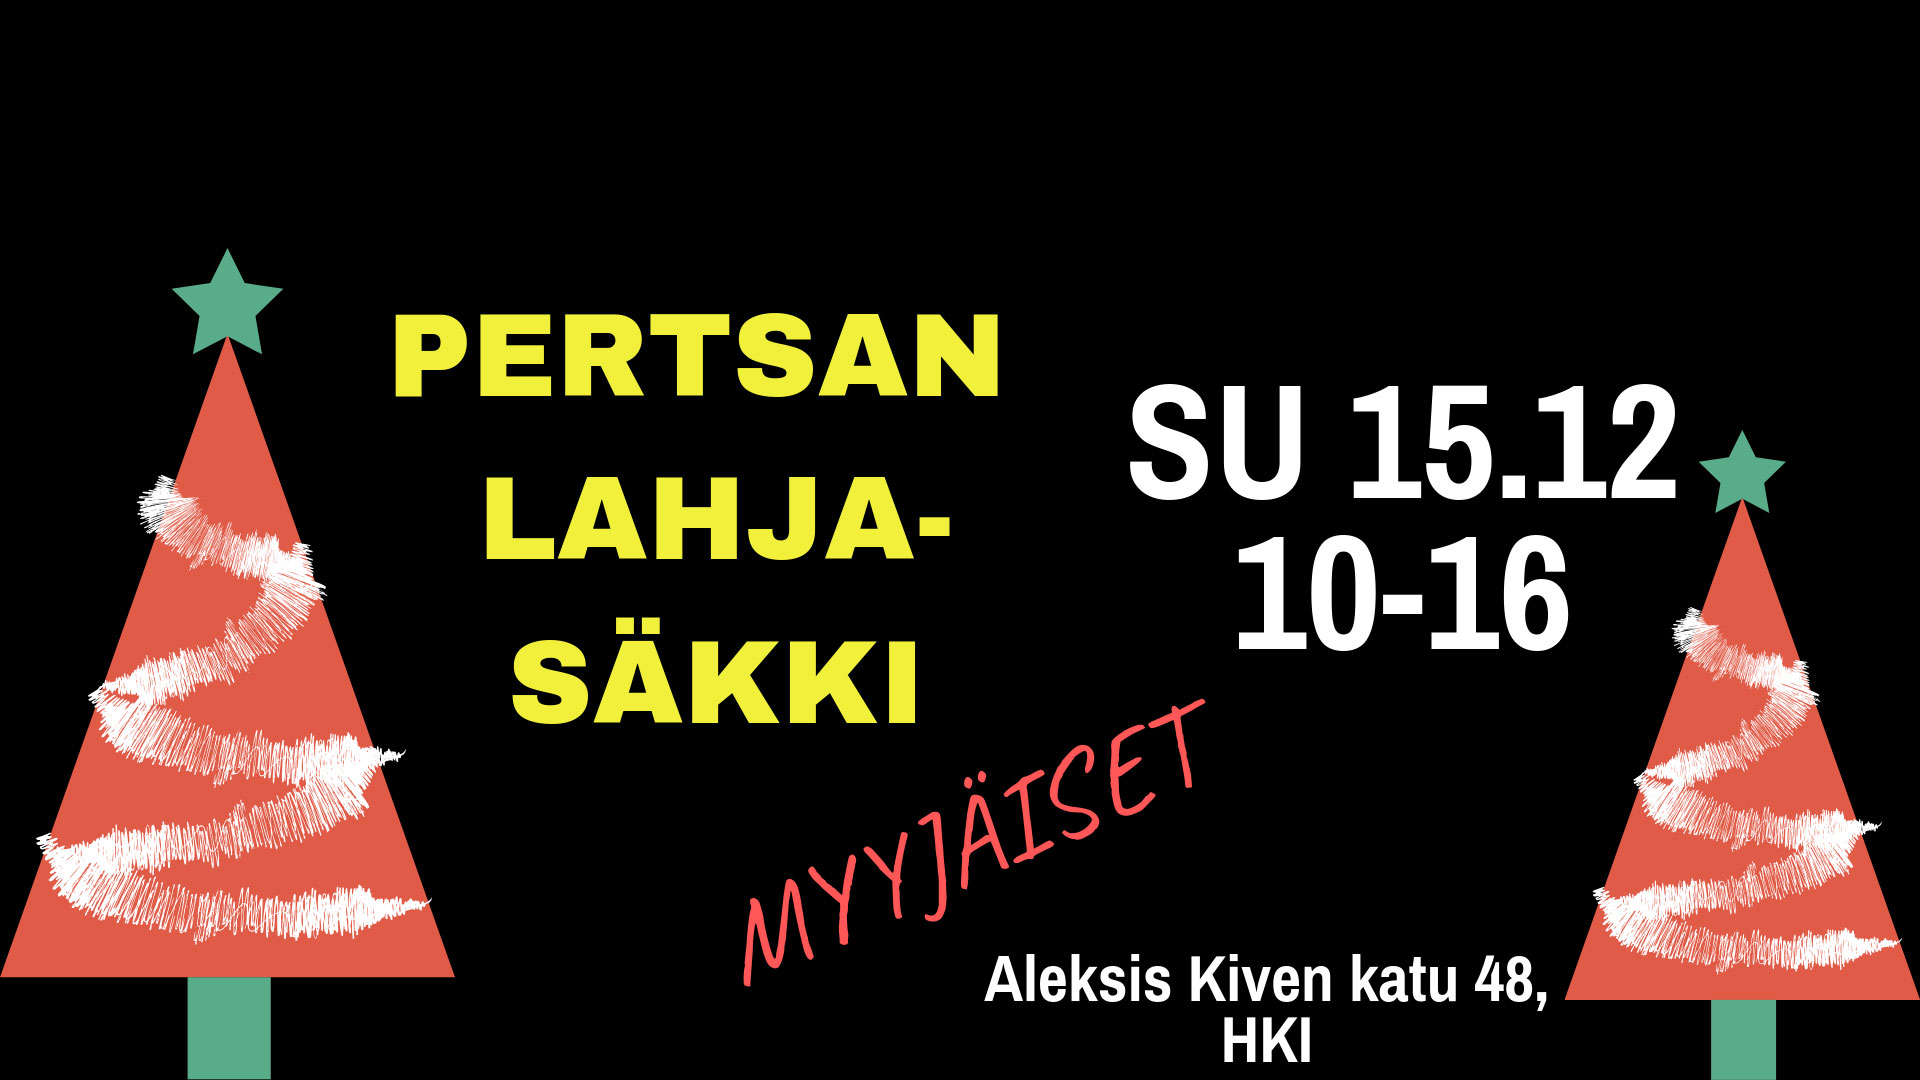 Link to event Pertsan Lahjasäkki Sales Party